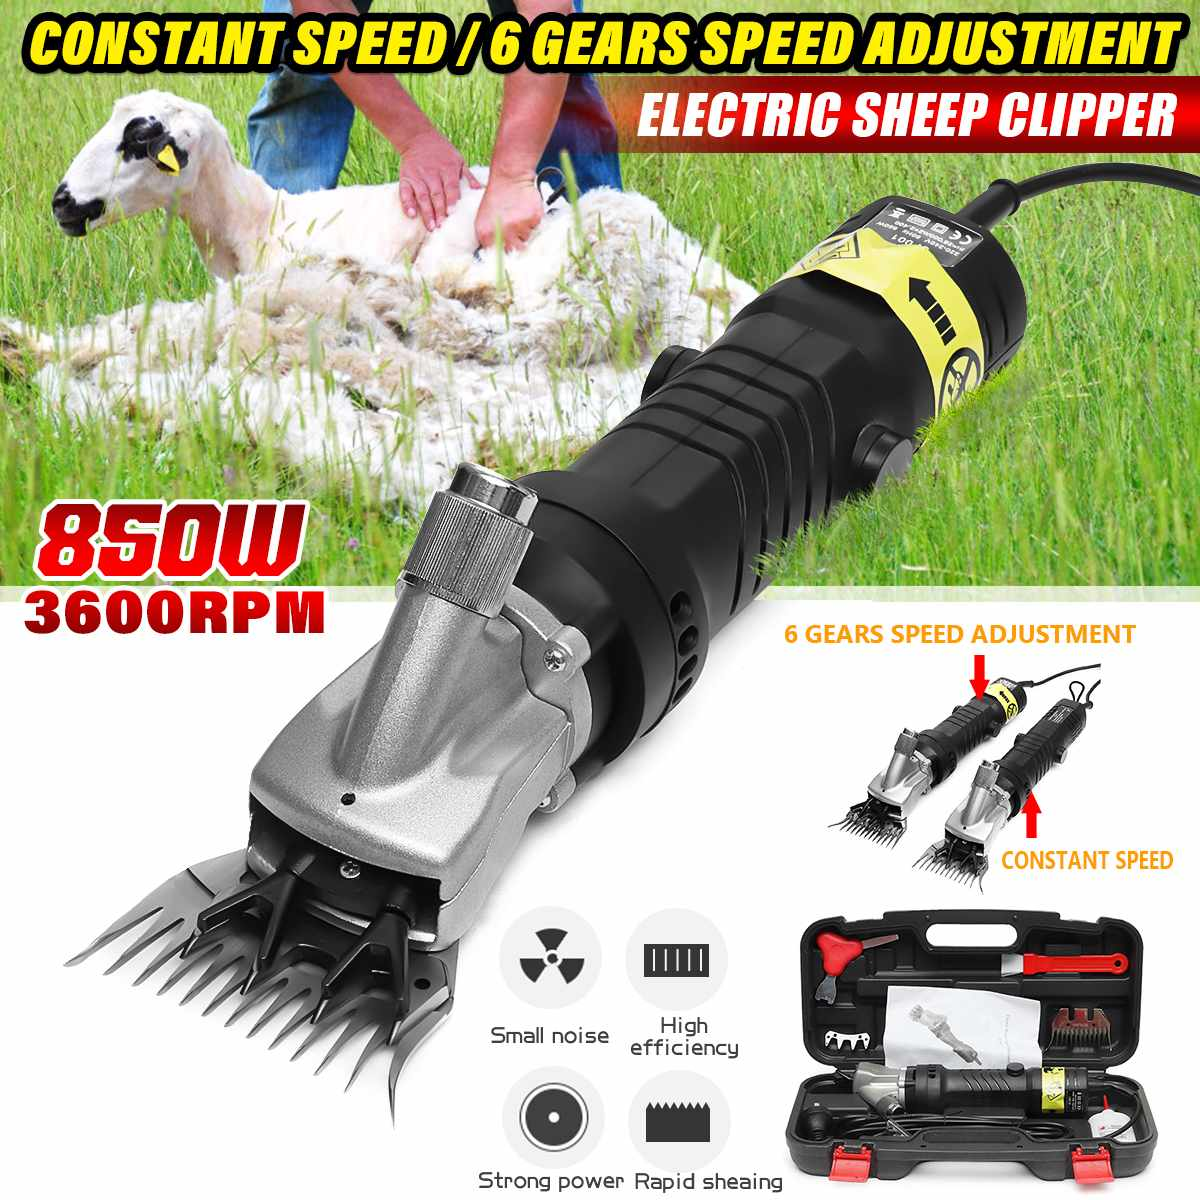 6 Gears Speed Electric Sheep Pet Hair Clipper Shearing Kit Farm Shear Wool Cut Goat Pet Animal Shearing Supplies 850W 220-240V